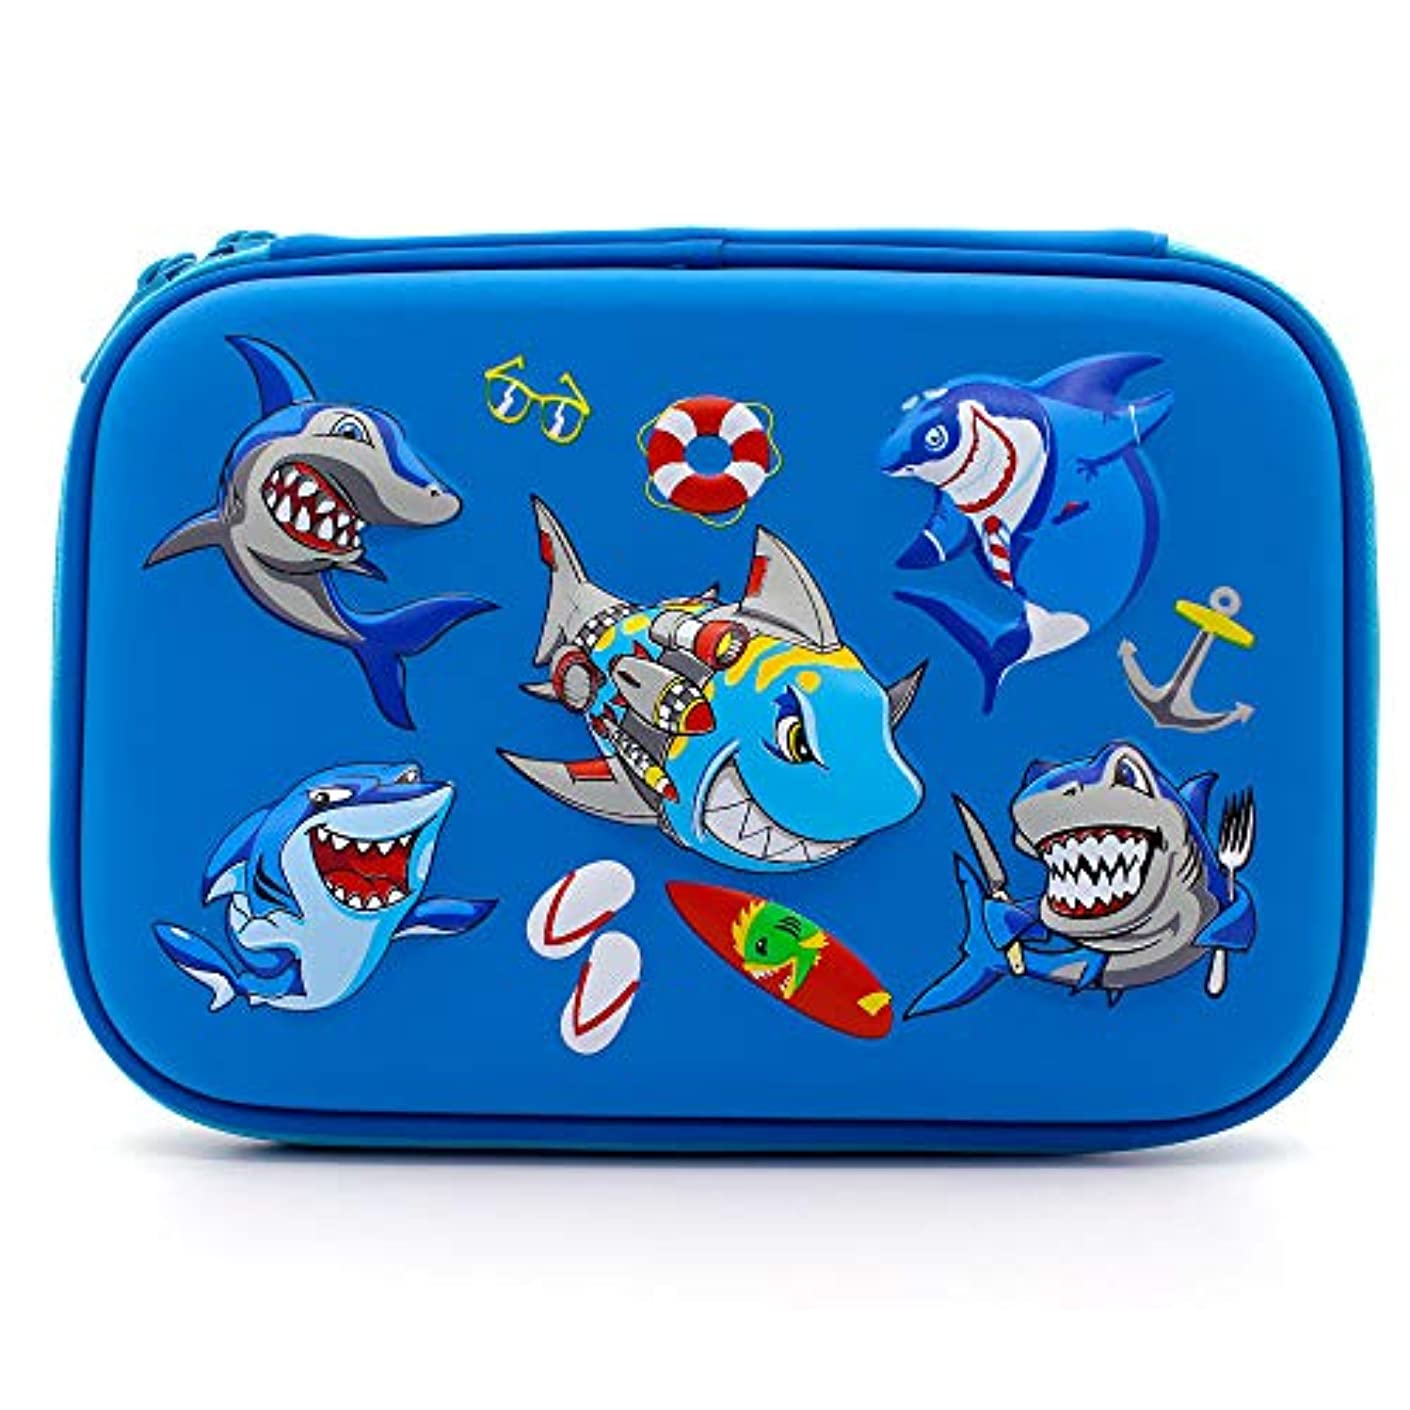 Angry Shark Boys Cool Pencil Case - Large Capacity Hardtop Pencil Box with Compartments - Colored Pencil Holder School Supply Organizer for Kids Girls Toddlers Children (Royal Blue)